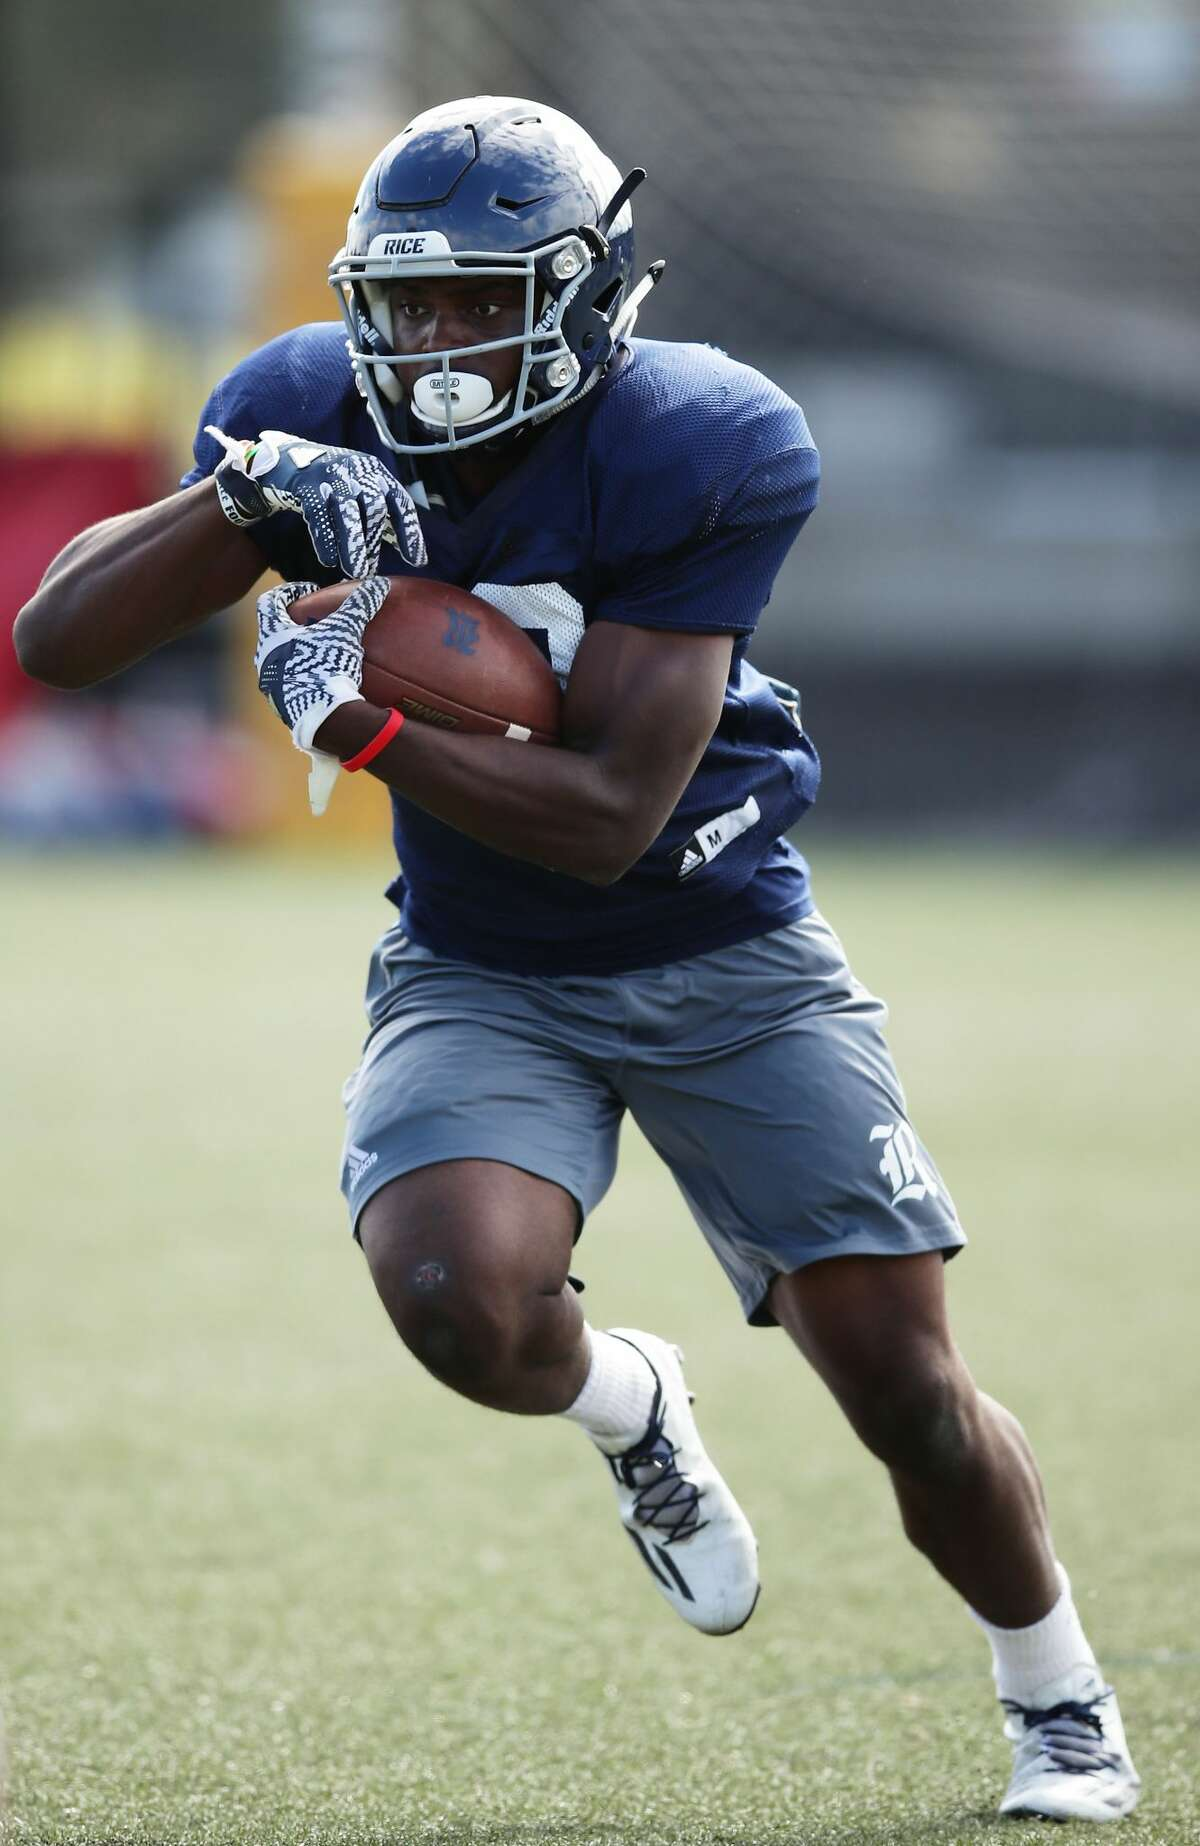 SYDNEY, AUSTRALIA - AUGUST 24: Anthony Ekpe runs during a Rice University College Football training session at David Phillips Sports Complex on August 24, 2017 in Sydney, Australia. (Photo by Matt King/Getty Images)